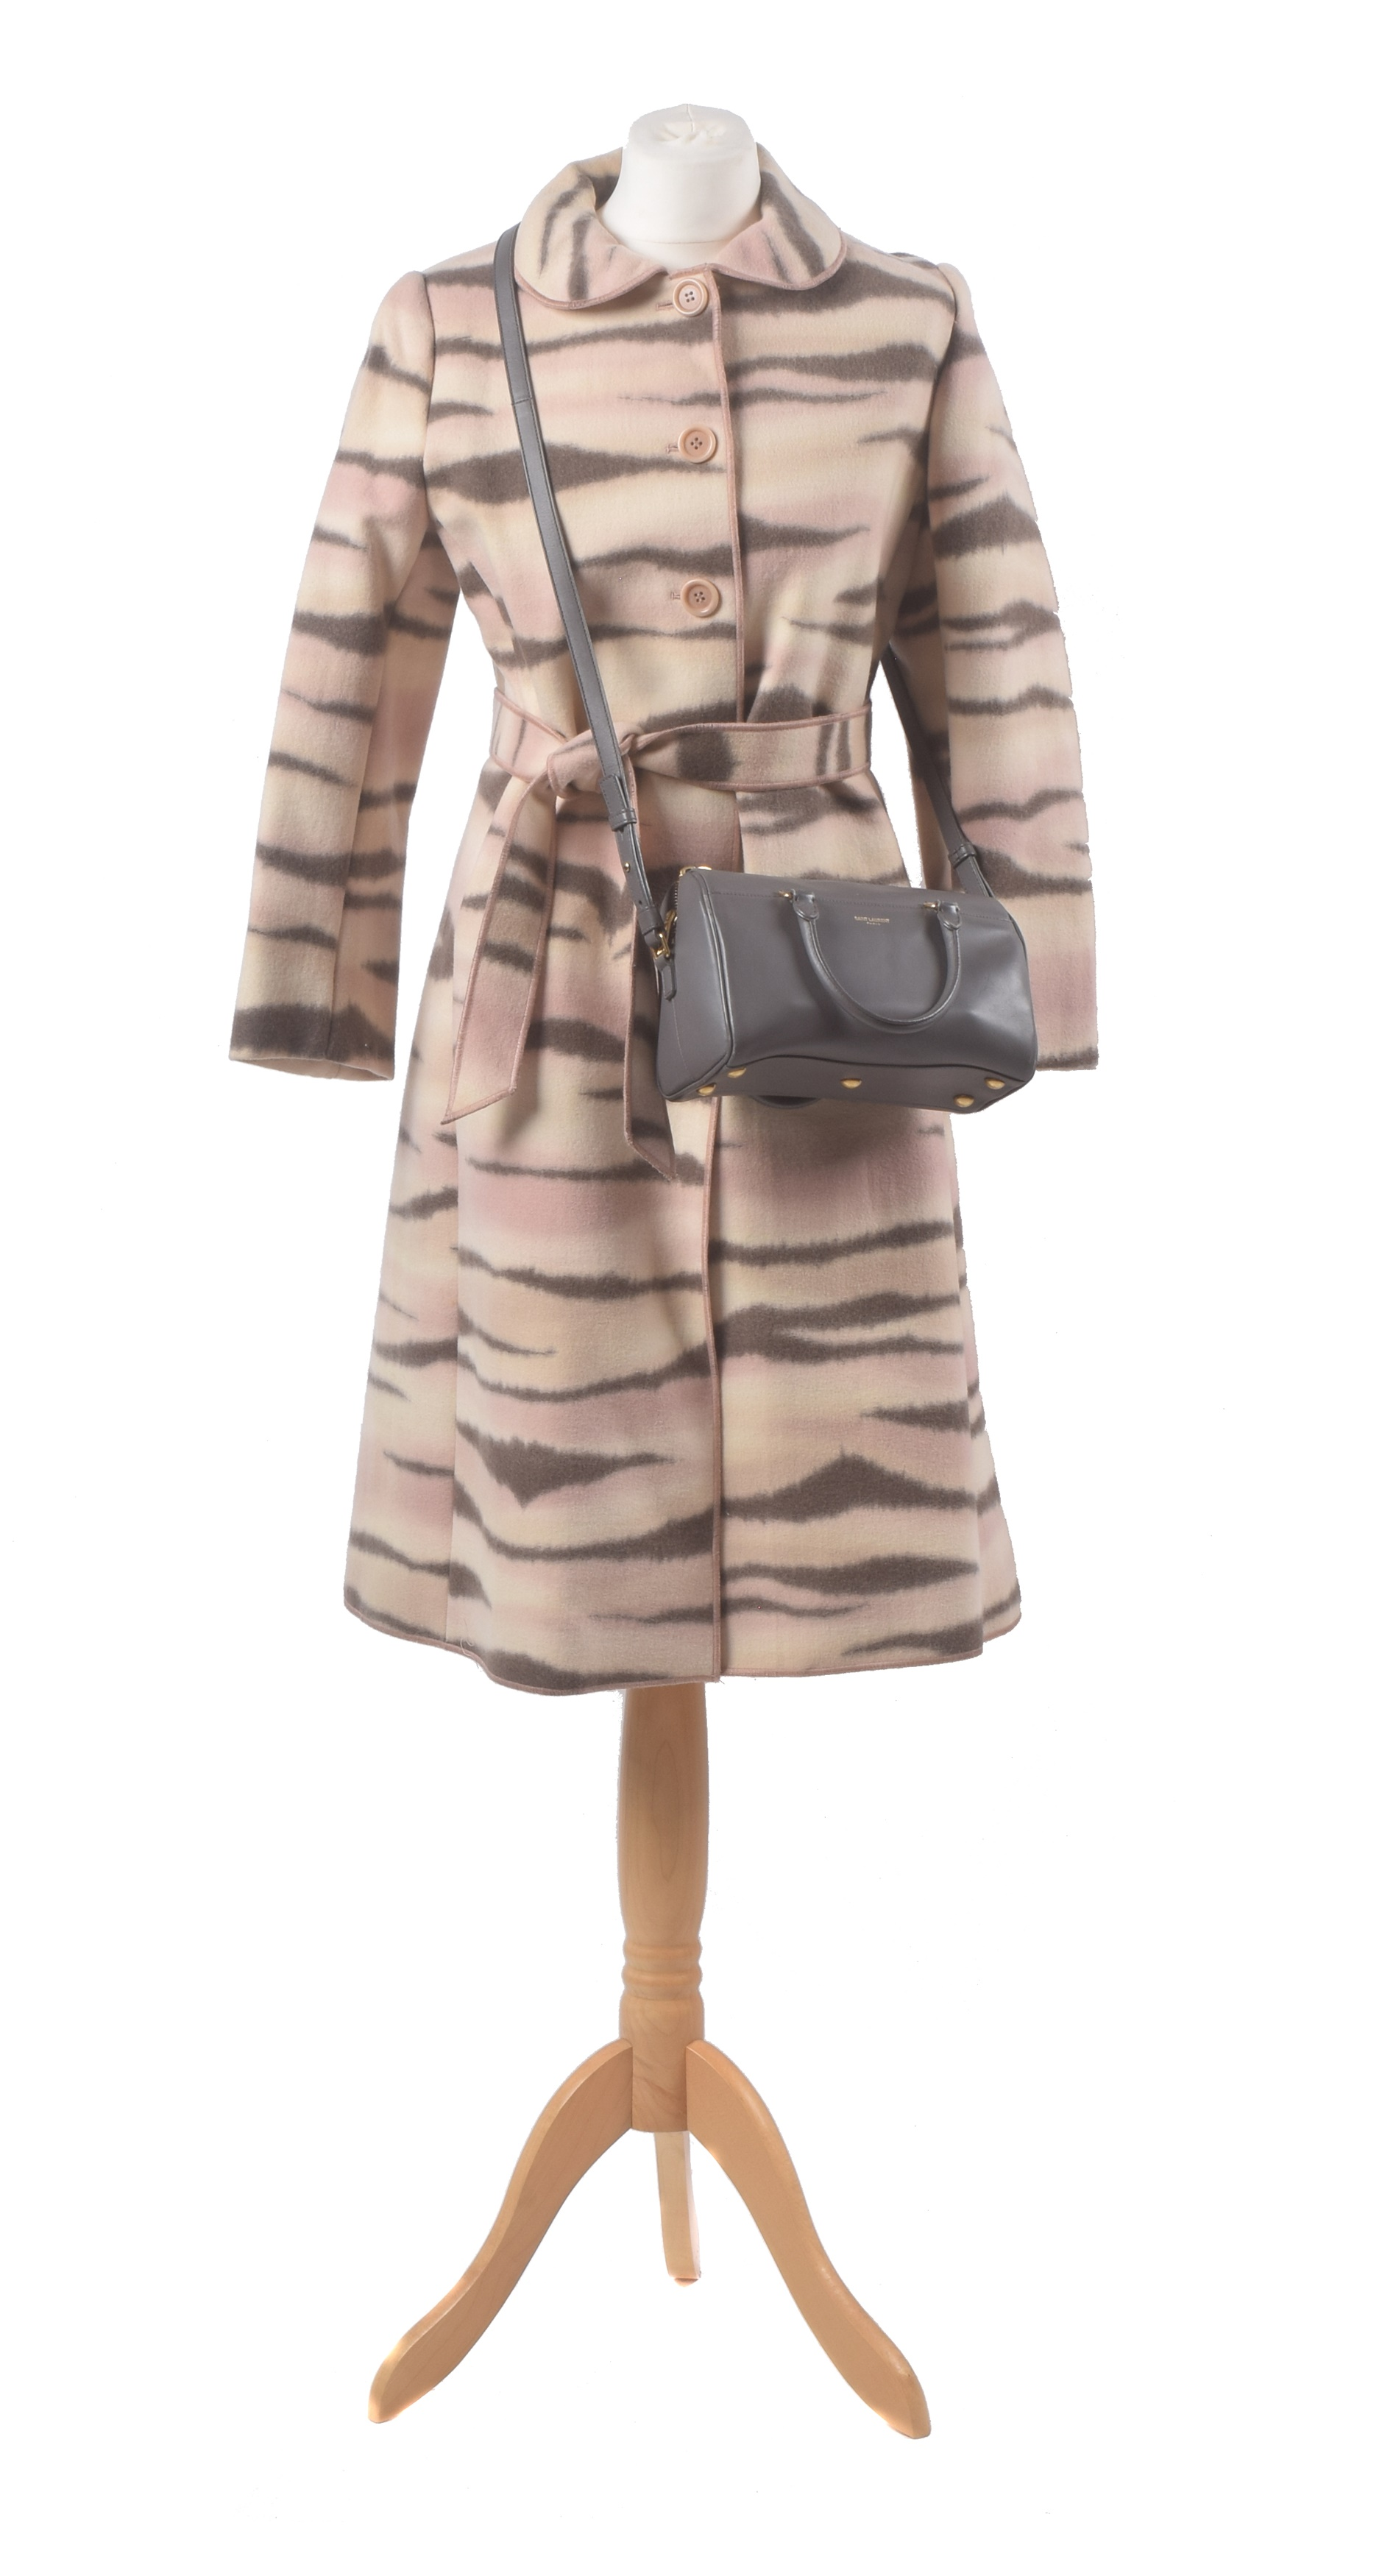 Moschino coat, YSL bag